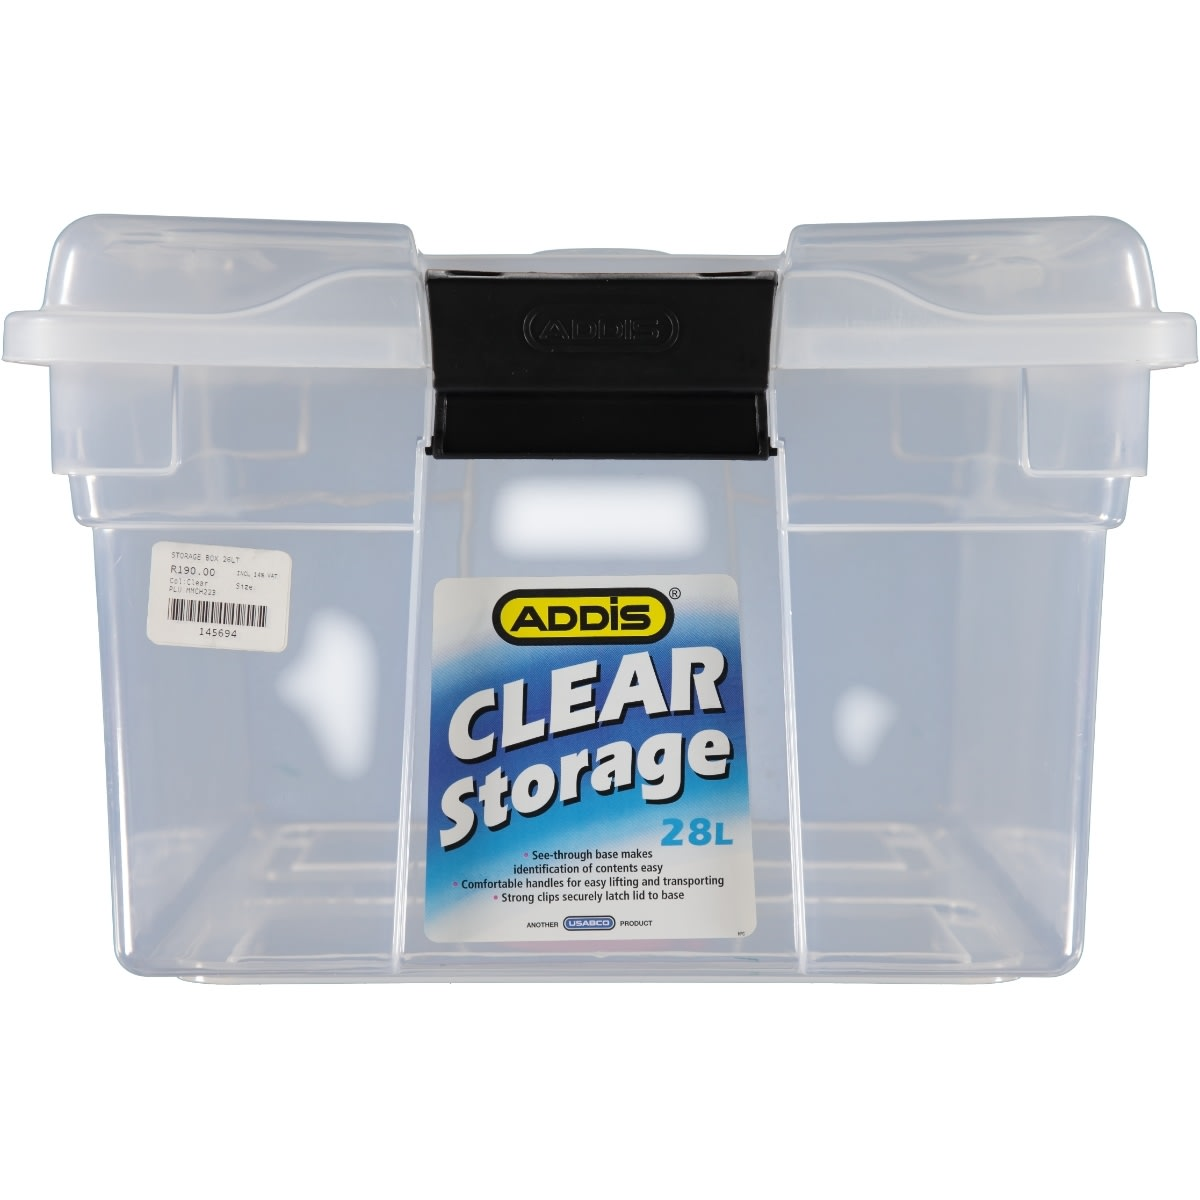 Addis Storage box (26L)